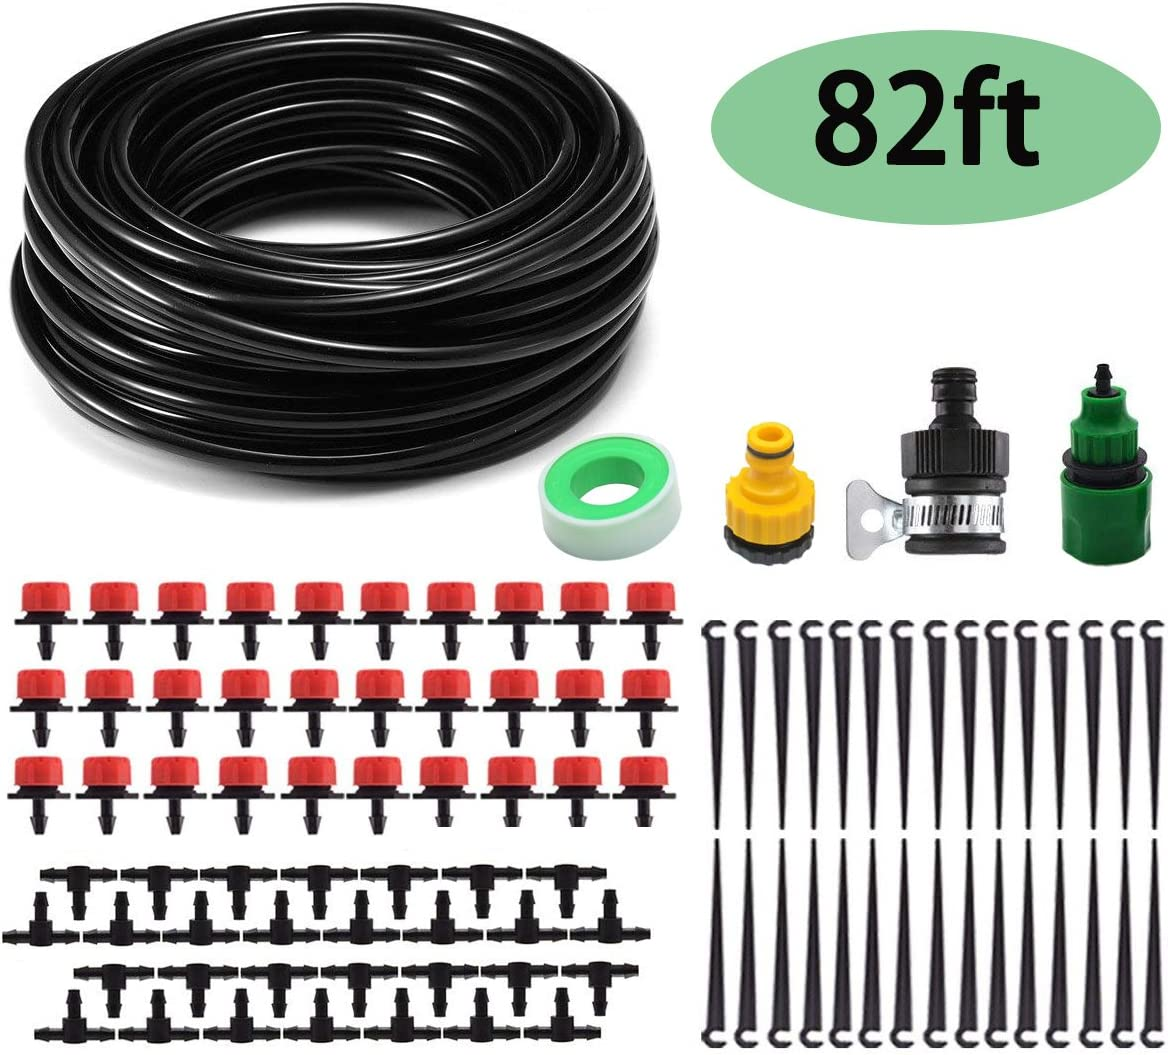 Kalolary 82ft Micro Drip Irrigation Kit System, DIY Plant Garden Hose Watering Kit, with 1/4'' Blank Distribution Tubing Hose for Agriculture,Lawn, Plants, Garden, Patio, Greenhouse